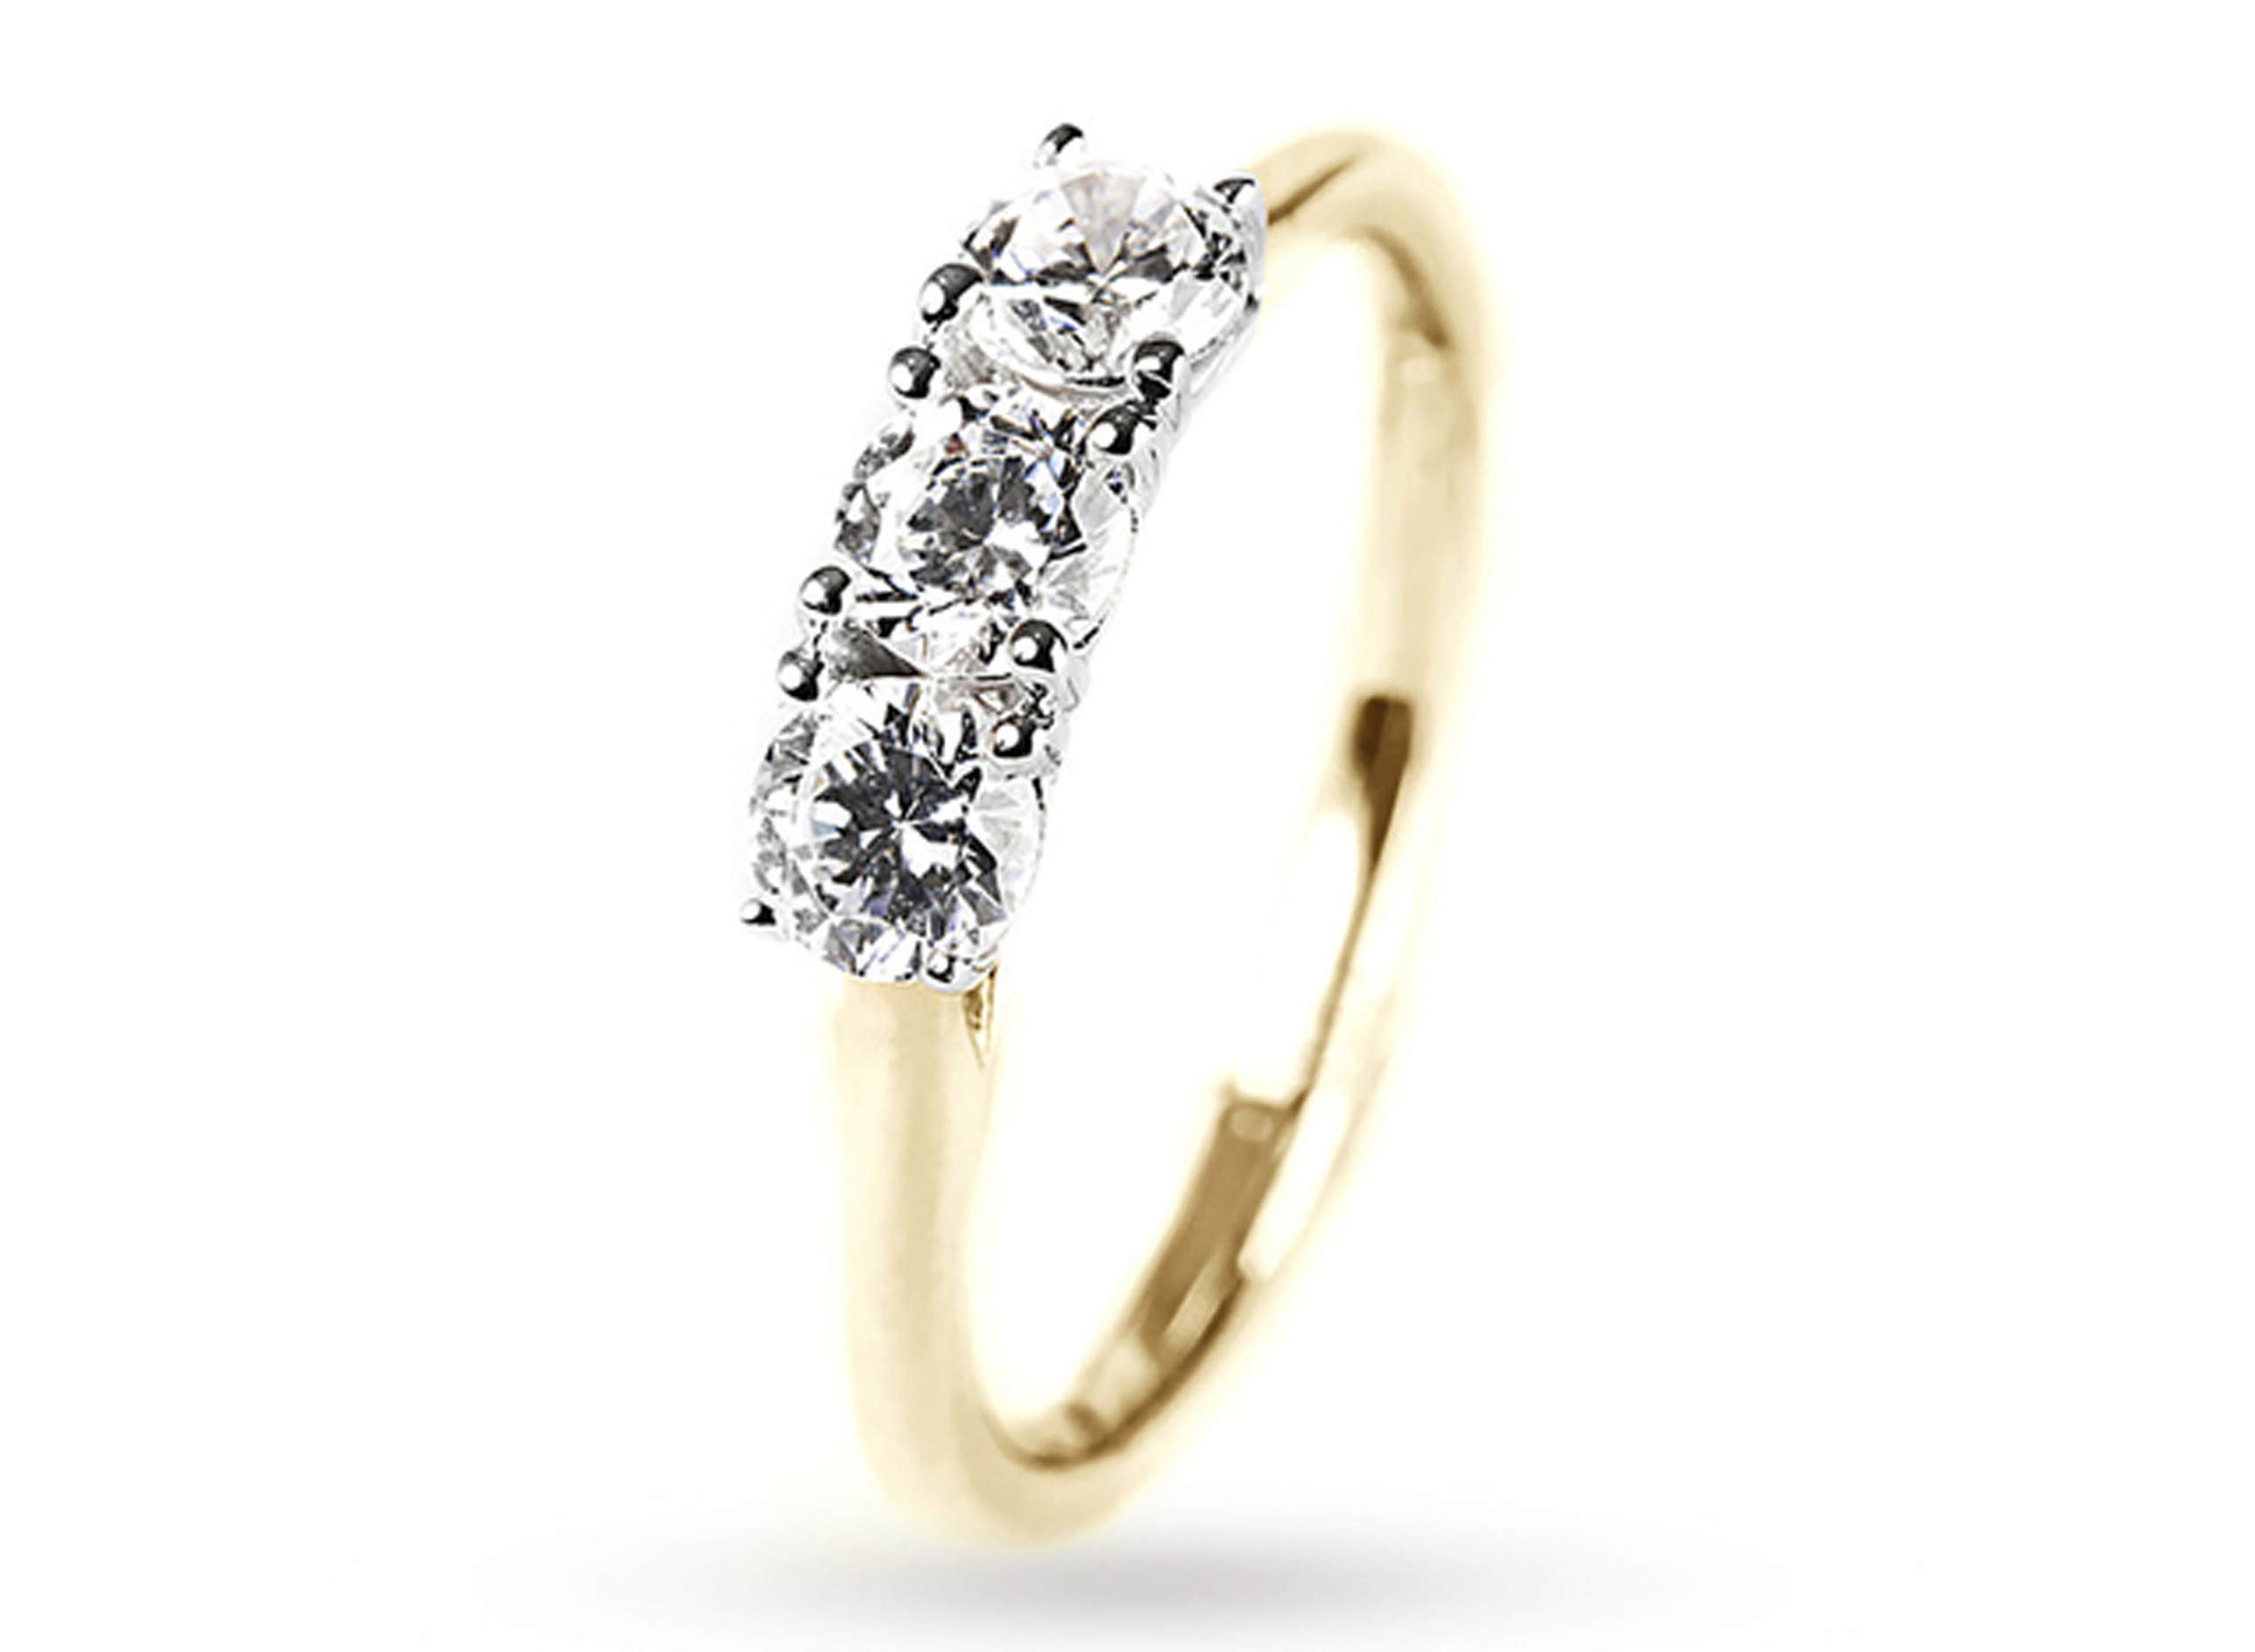 wedding diamond upgrade fullsizerender rachel talbott ring carat